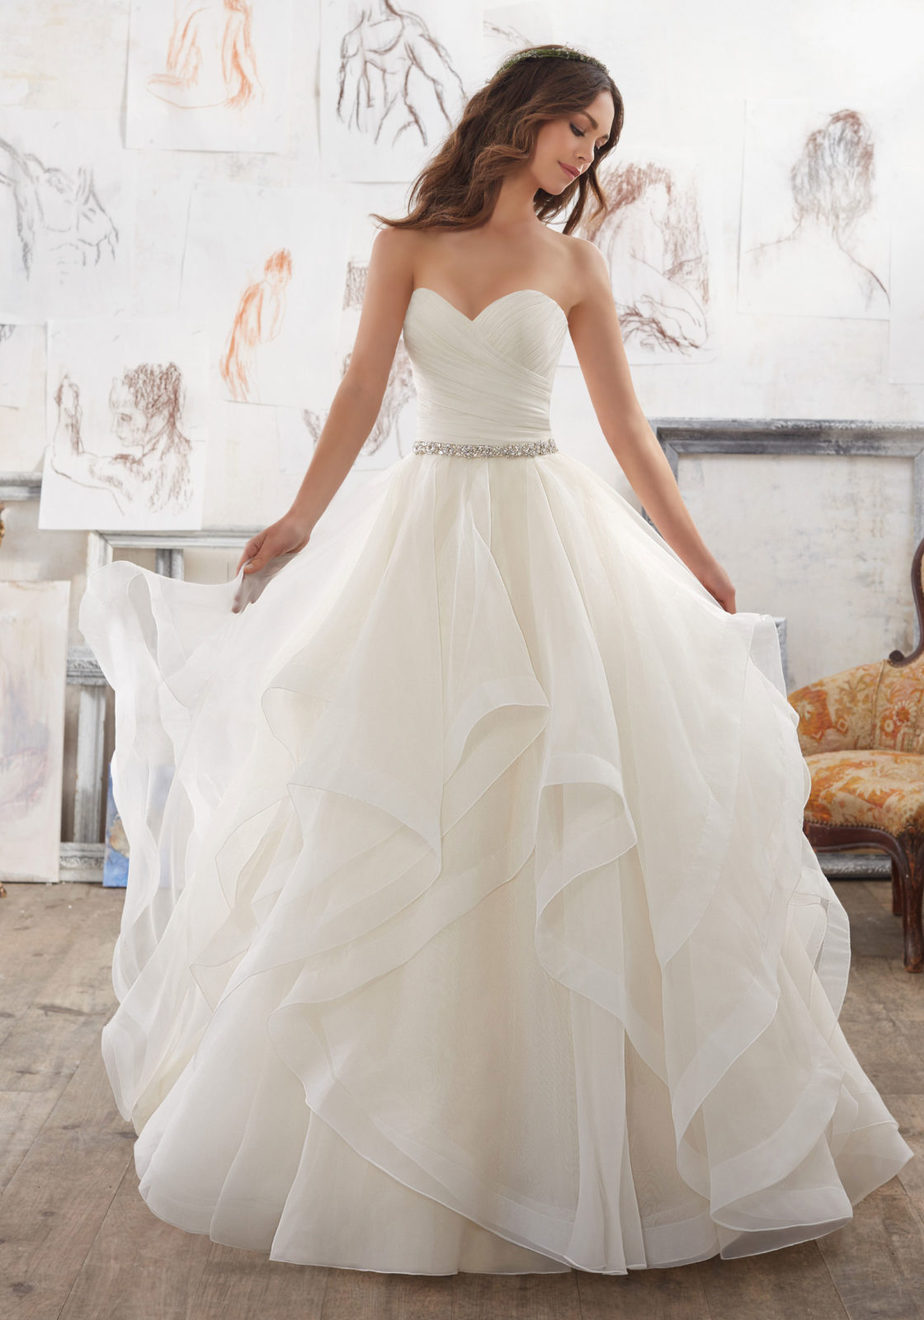 Marissa wedding dress